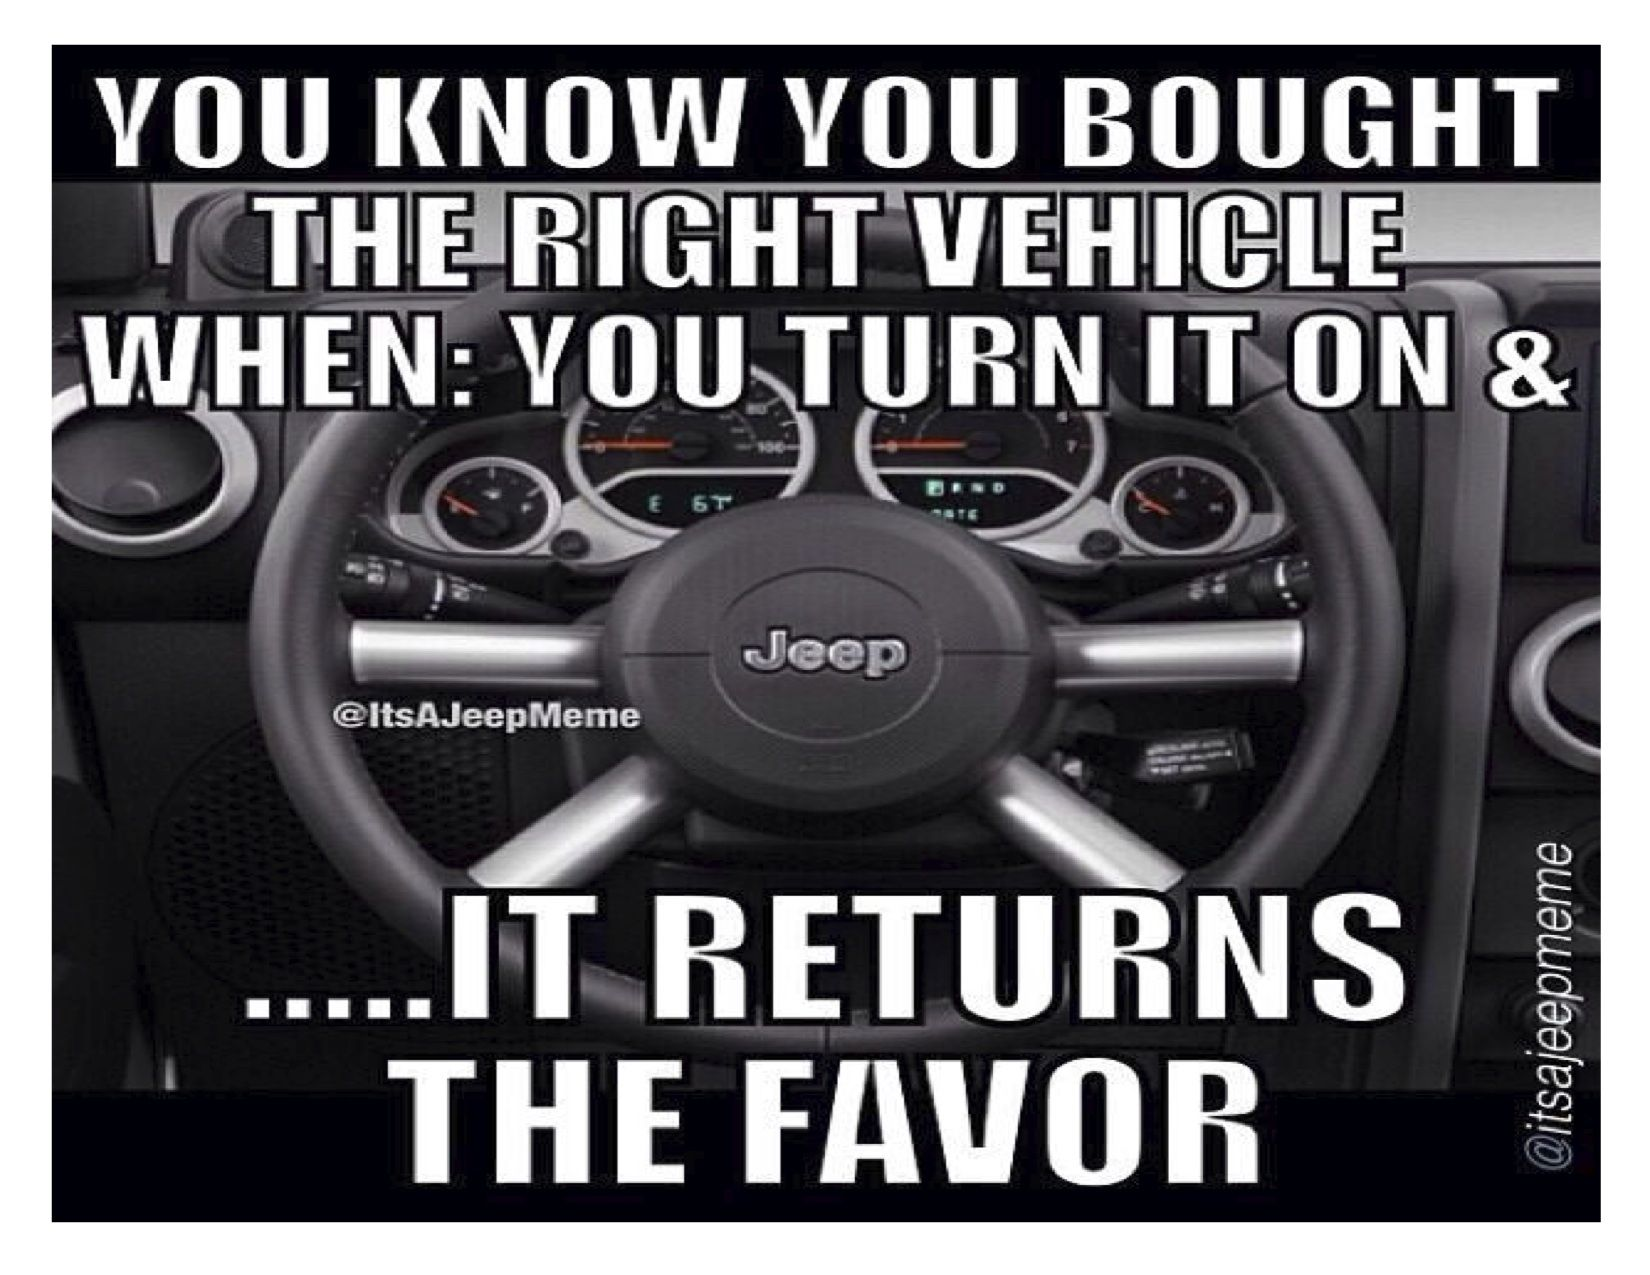 """""""You know you bought the right vehicle when you turn it on & …it returns the favor."""" - via jeepbeff / Andrew Morris _____________________________ Reposted by Dr. Veronica Lee, DNP (Depew/Buffalo, NY, US)"""